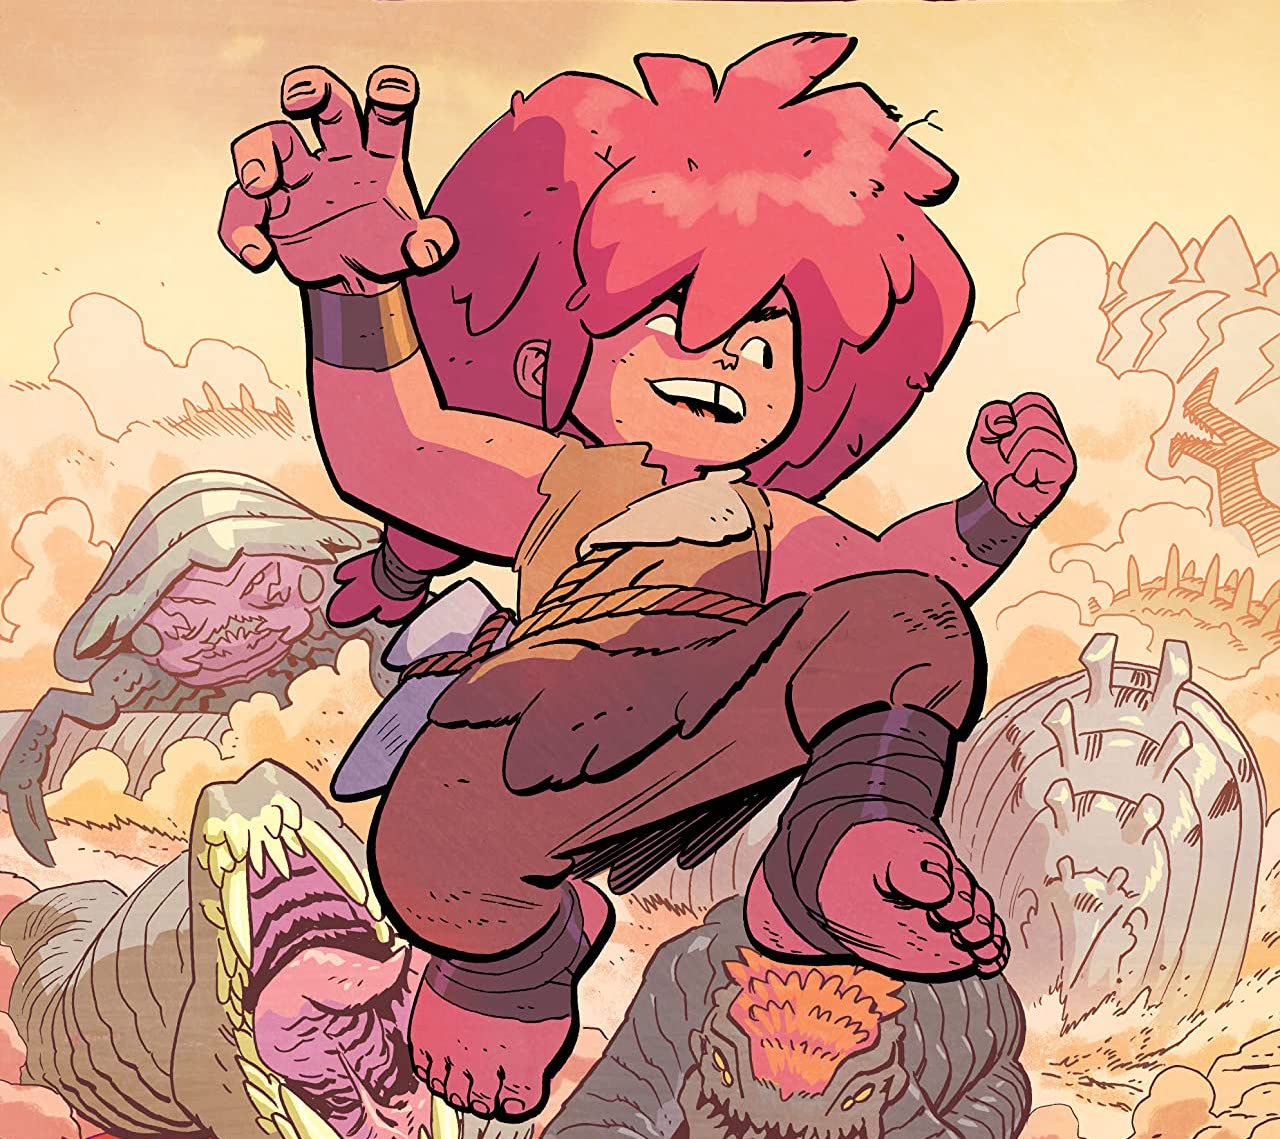 'Jonna and the Unpossible Monsters' #1 serves epic scale and mystery